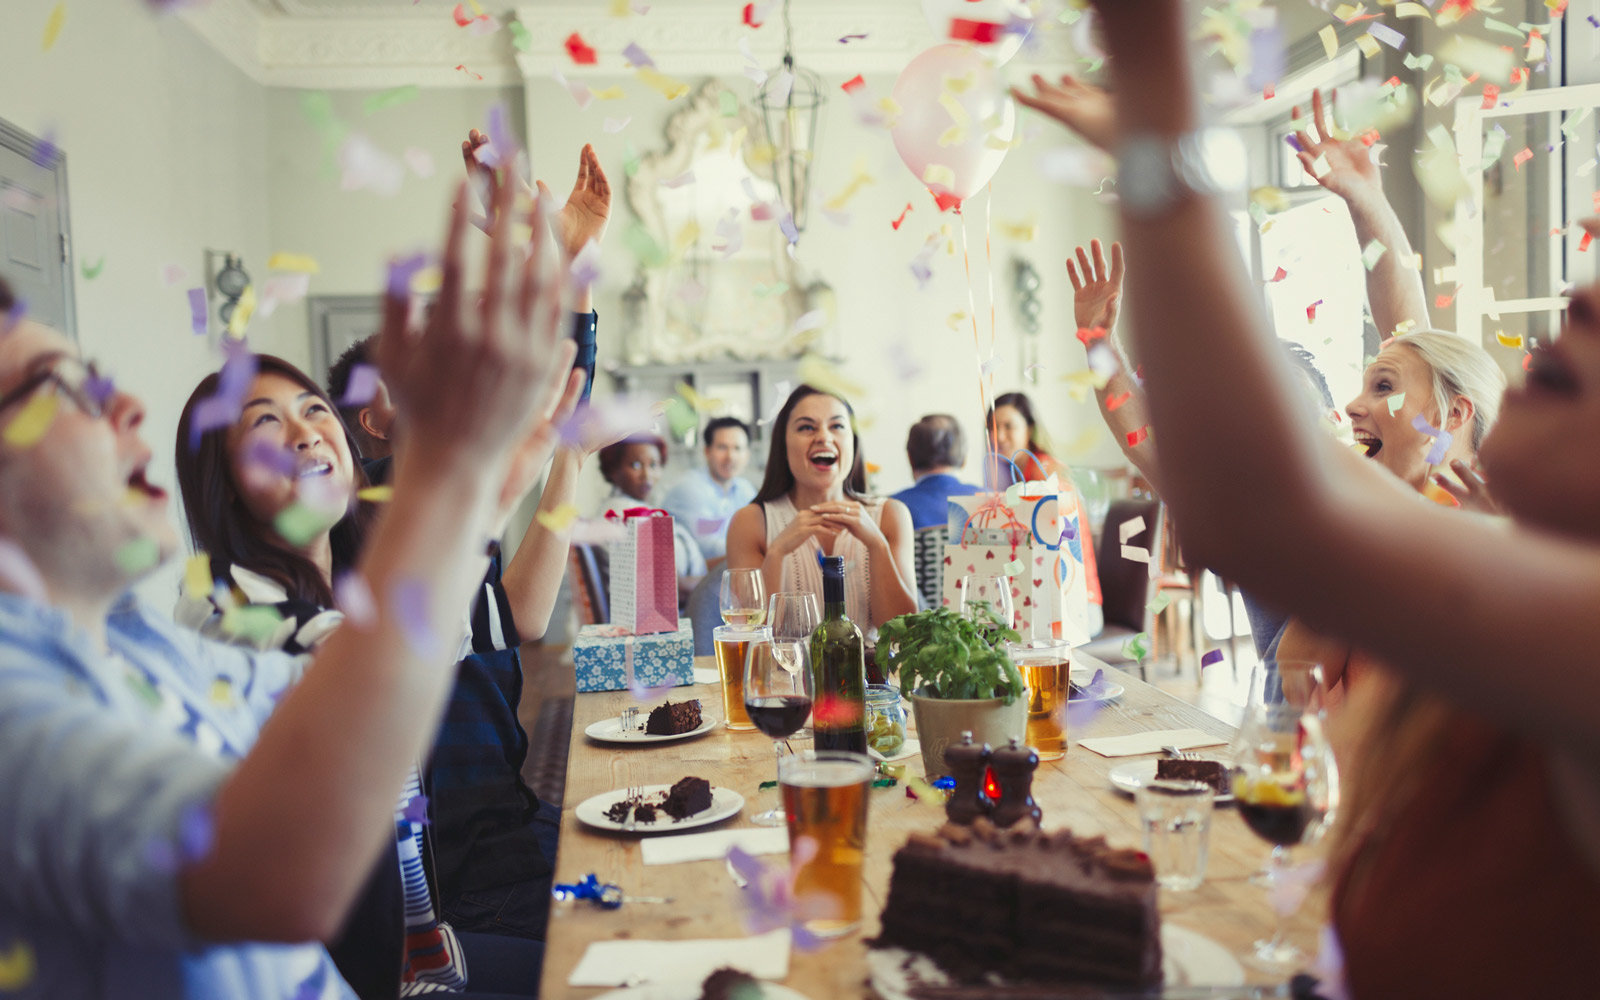 Friends celebrating birthday throwing confetti overhead at restaurant table